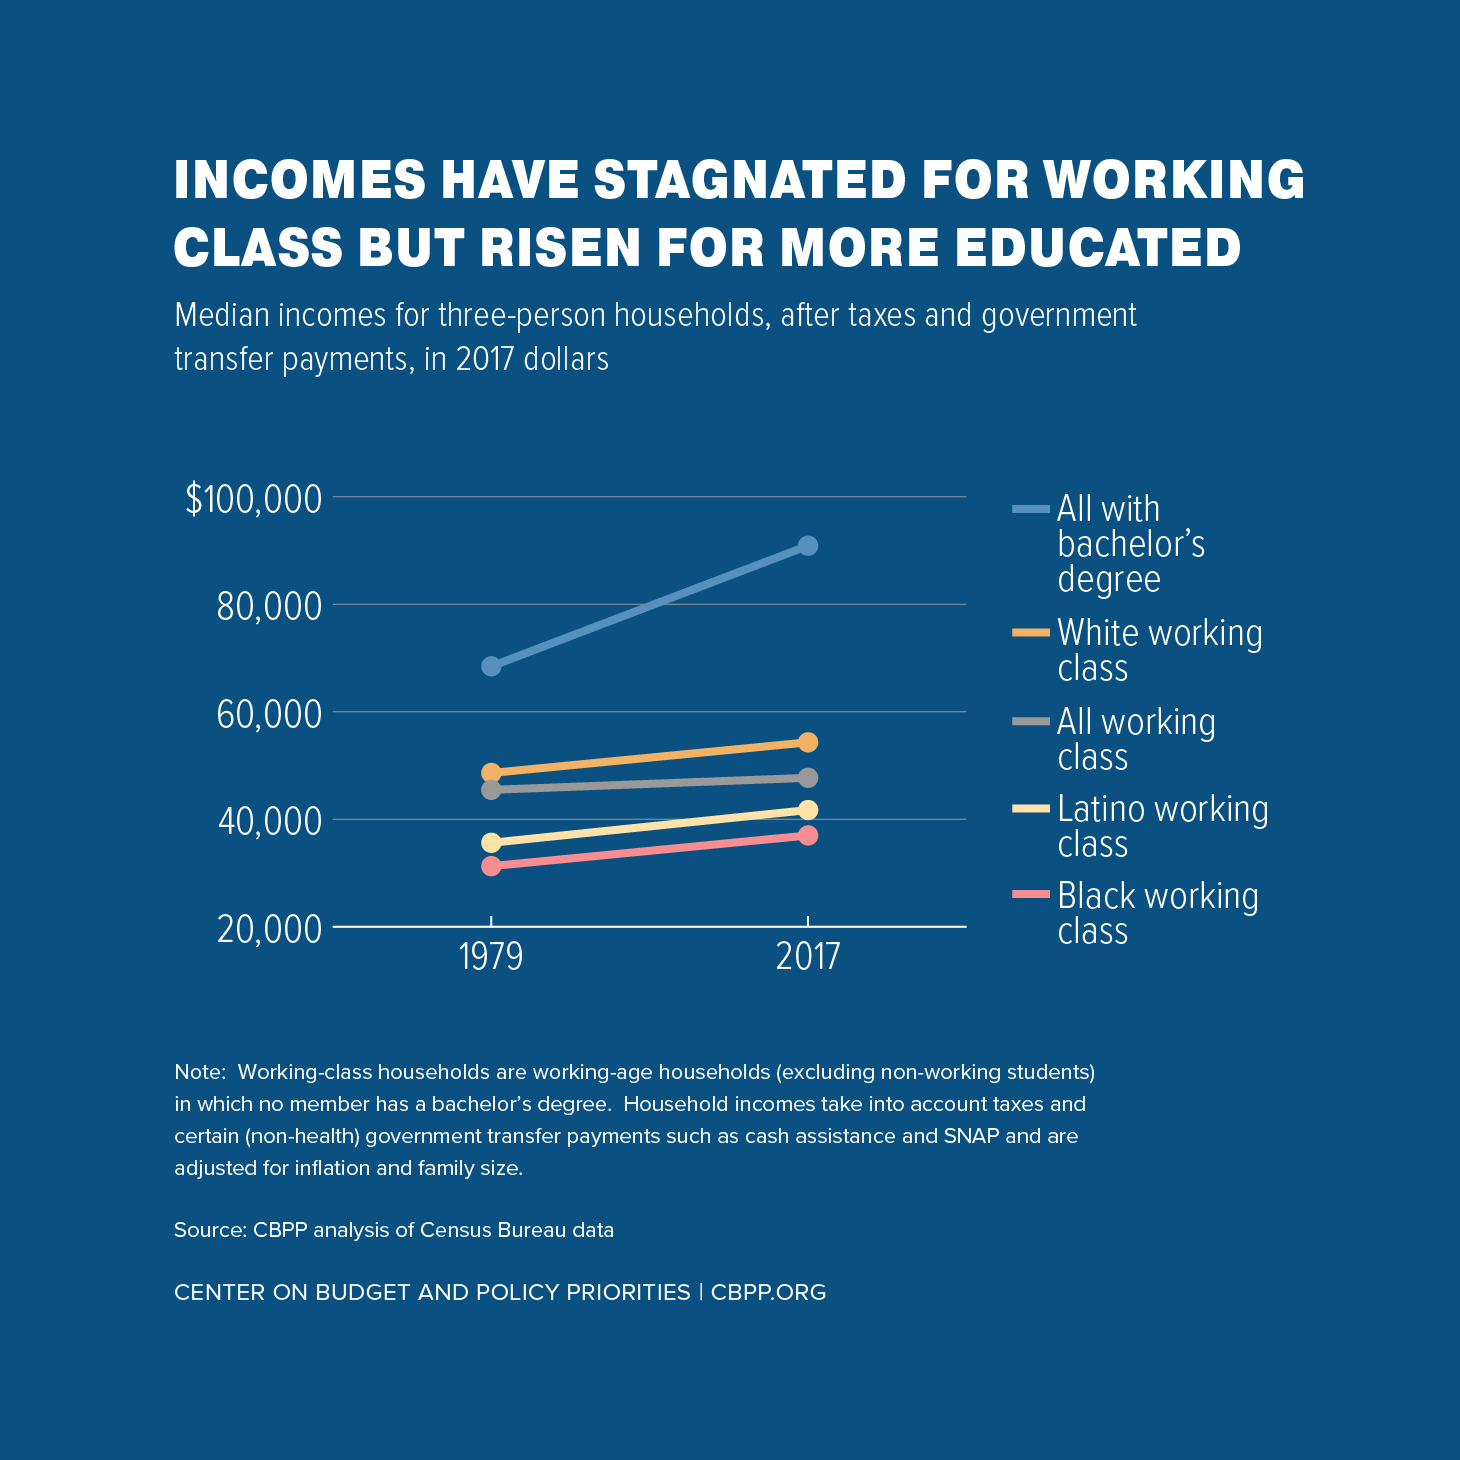 Incomes Have Stagnated for Working Class But Risen for More Educated